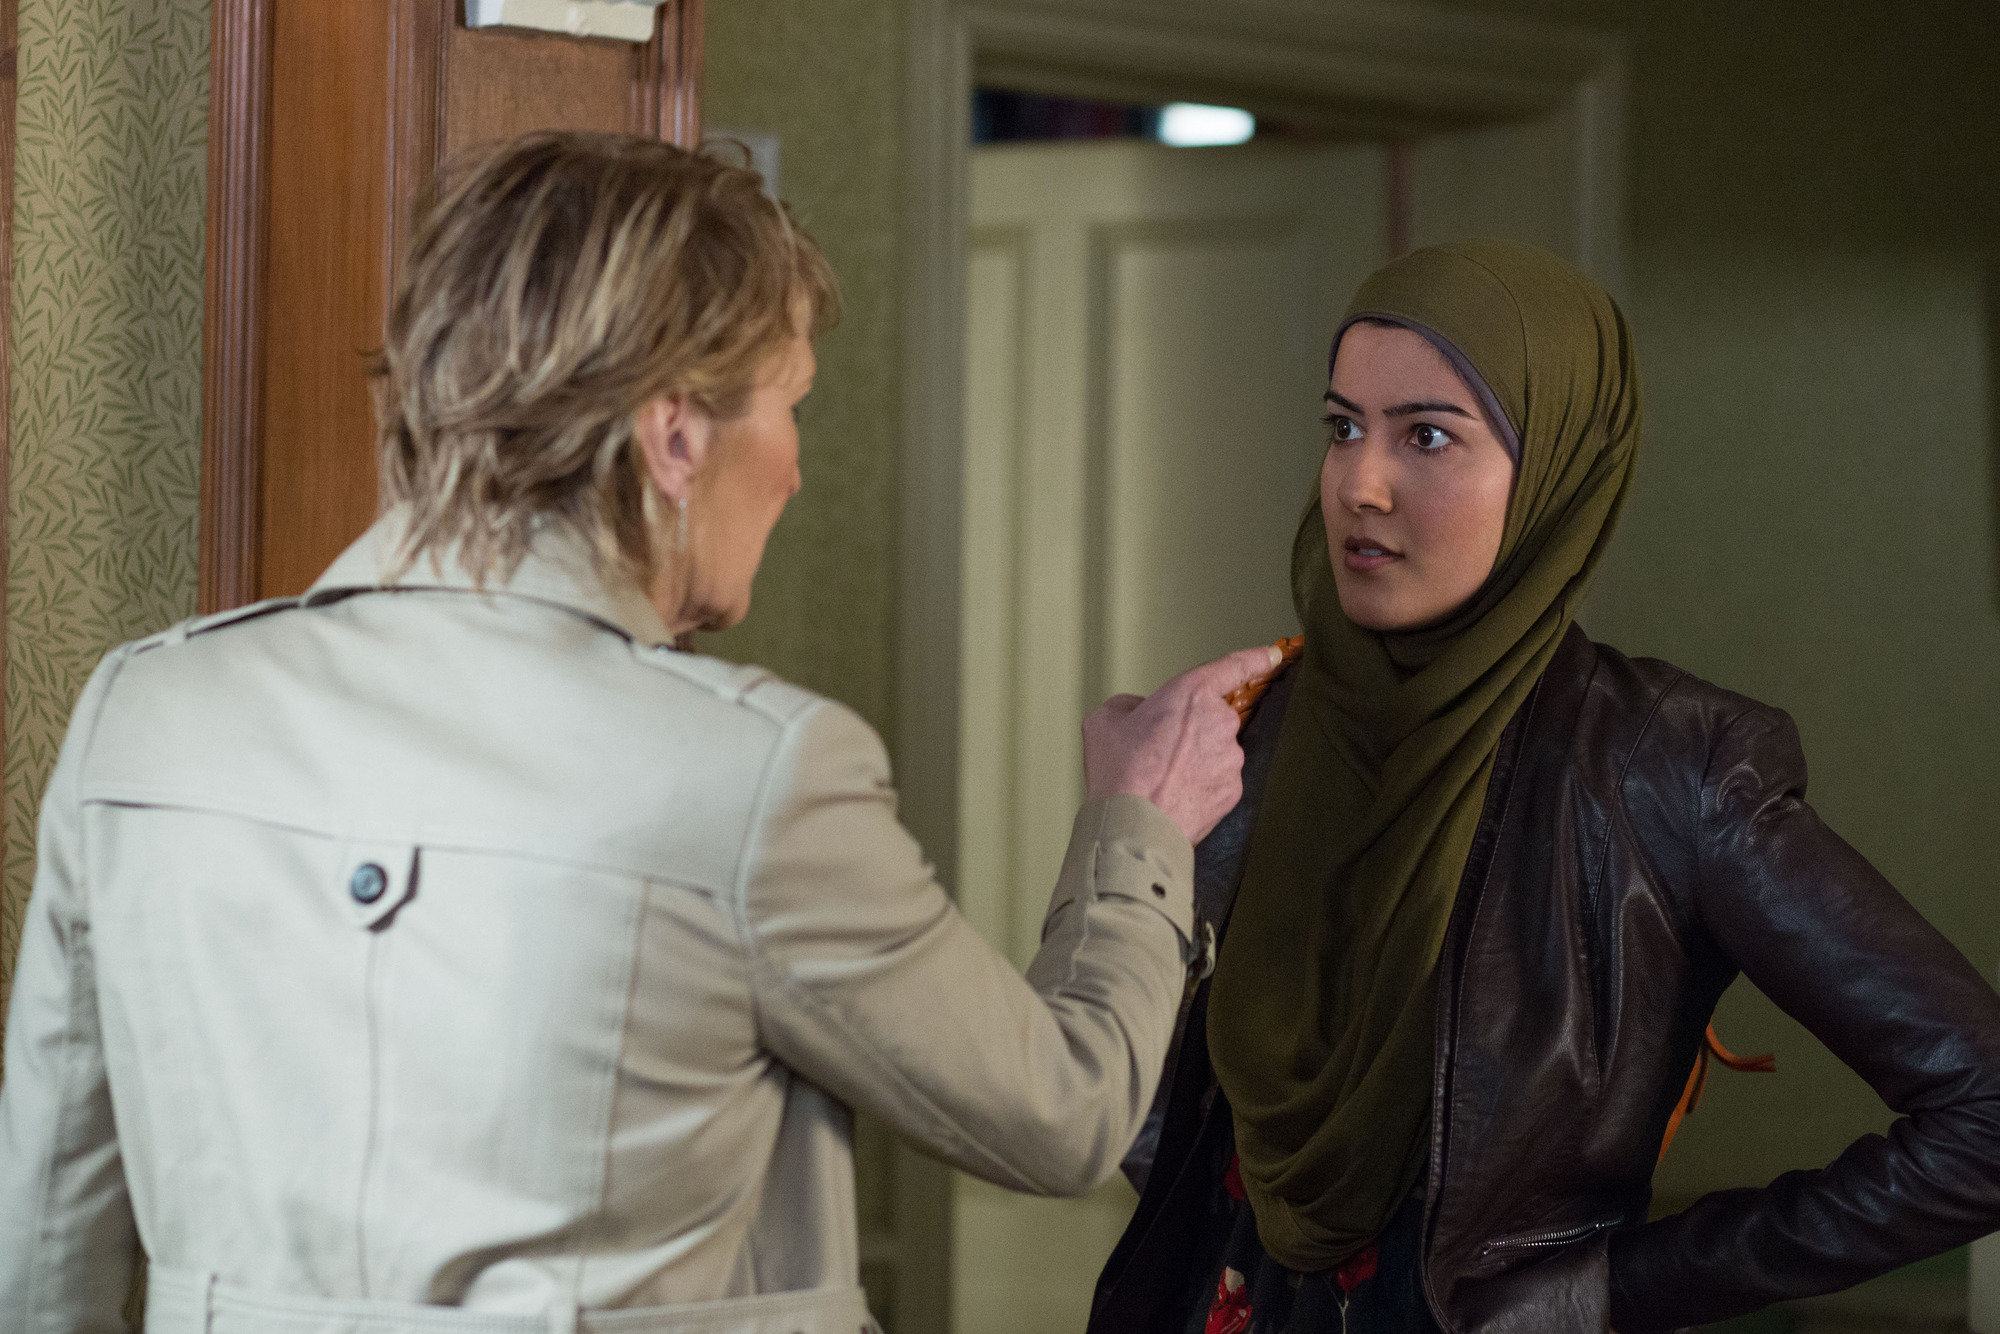 WARNING: Embargoed for publication until 12/05/2015 - Programme Name: EastEnders - TX: 22/05/2015 - Episode: 5072 (No. n/a) - Picture Shows: ***FORTNIGHTLIES PLEASE DO NOT USE (SOAP LIFE and ALL ABOUT SOAP) Shirley confronts Shabnam.  Shirley Carter (LINDA HENRY), Shabnam Masood (RAKHEE THAKRAR) - (C) BBC - Photographer: Jack Barnes